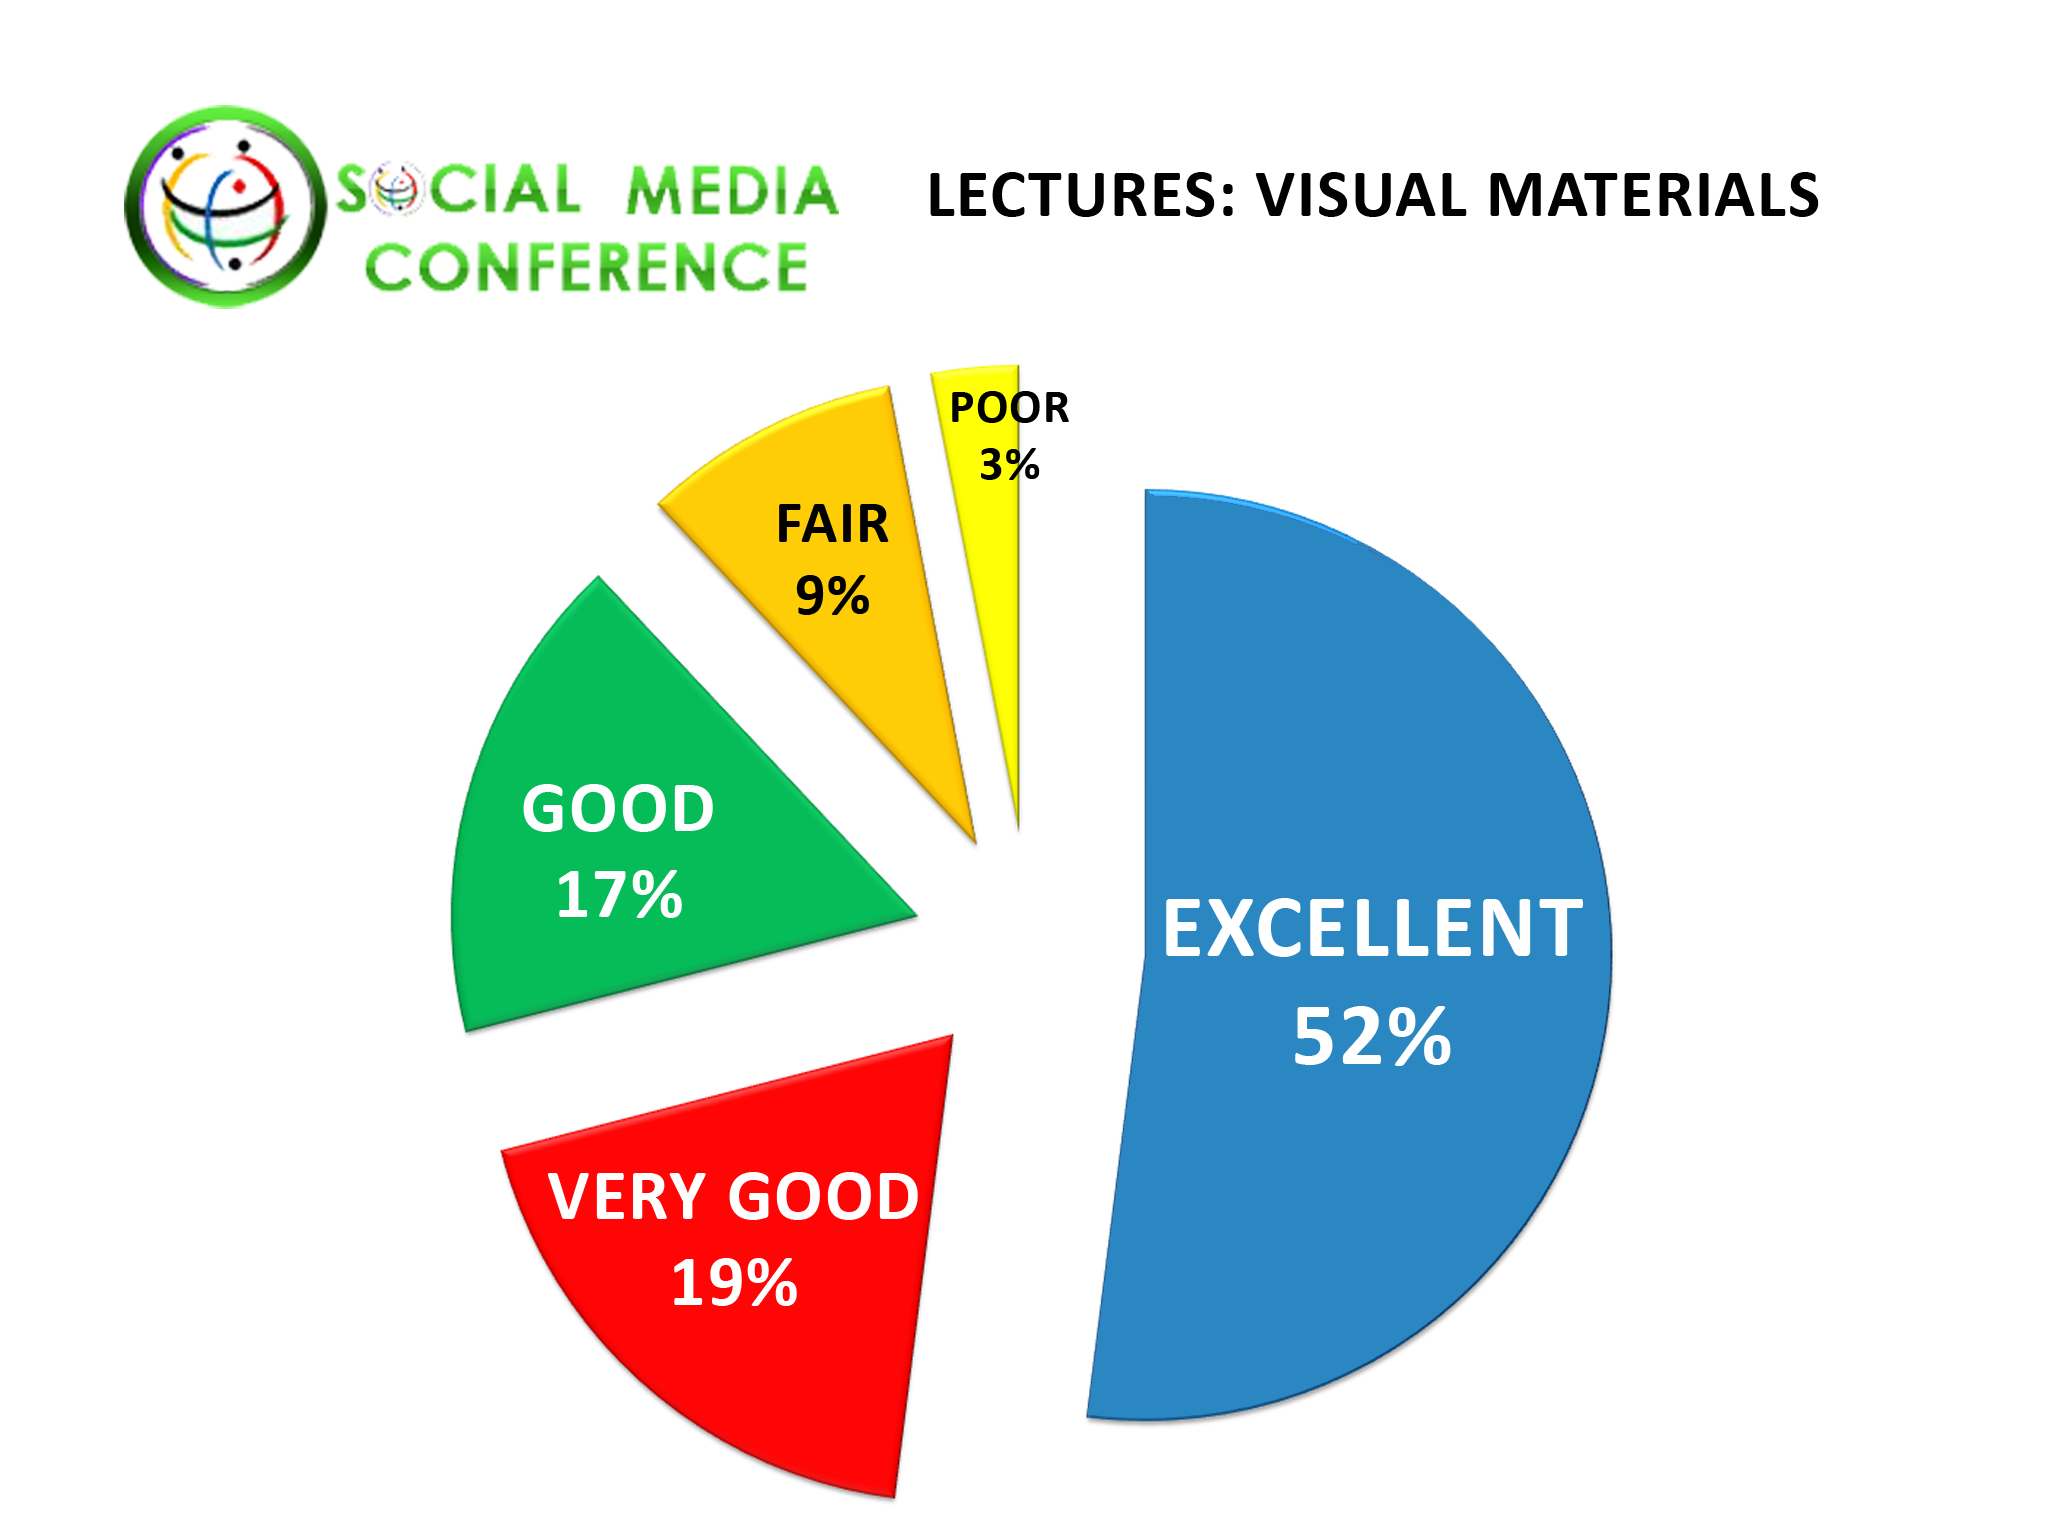 Social Networking Conference 2012 Dating Industry Conference Survey of Visual Materials by Delegates